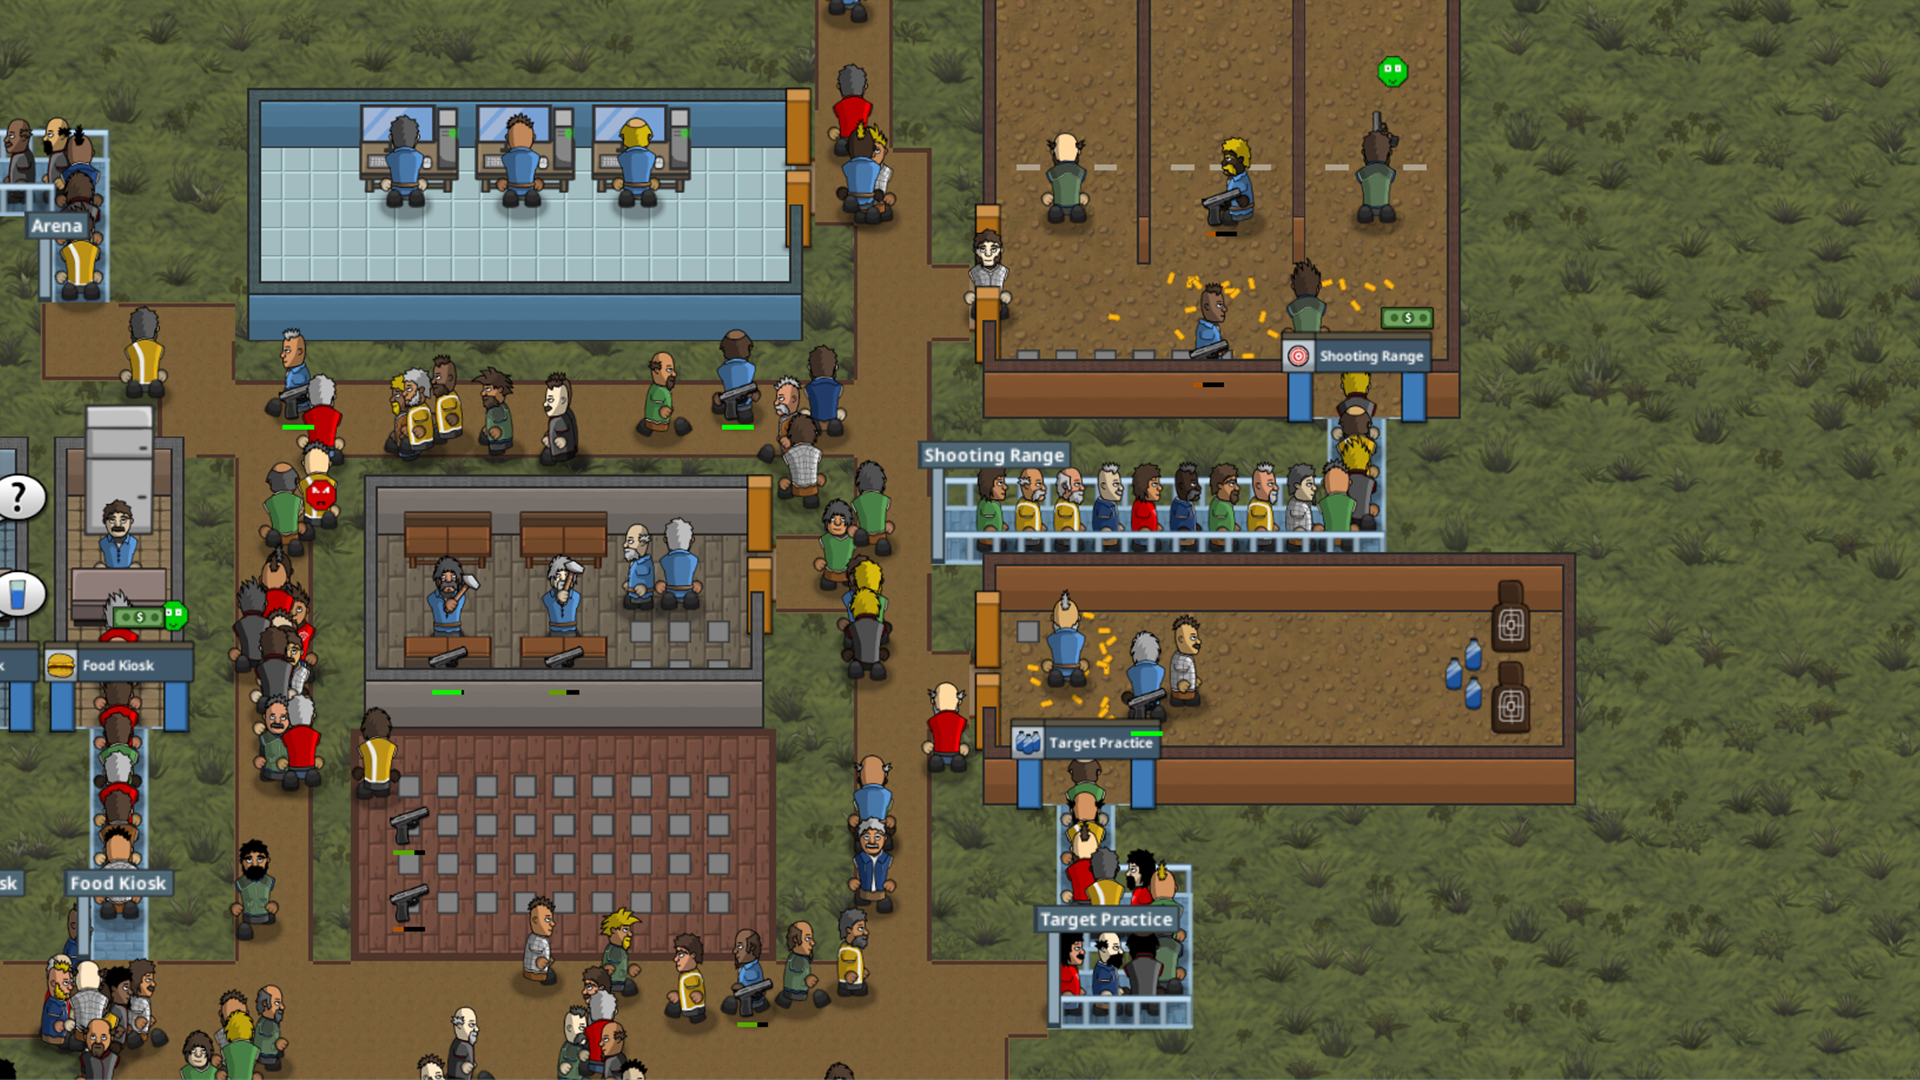 Battle Royale Tycoon gearing up for release